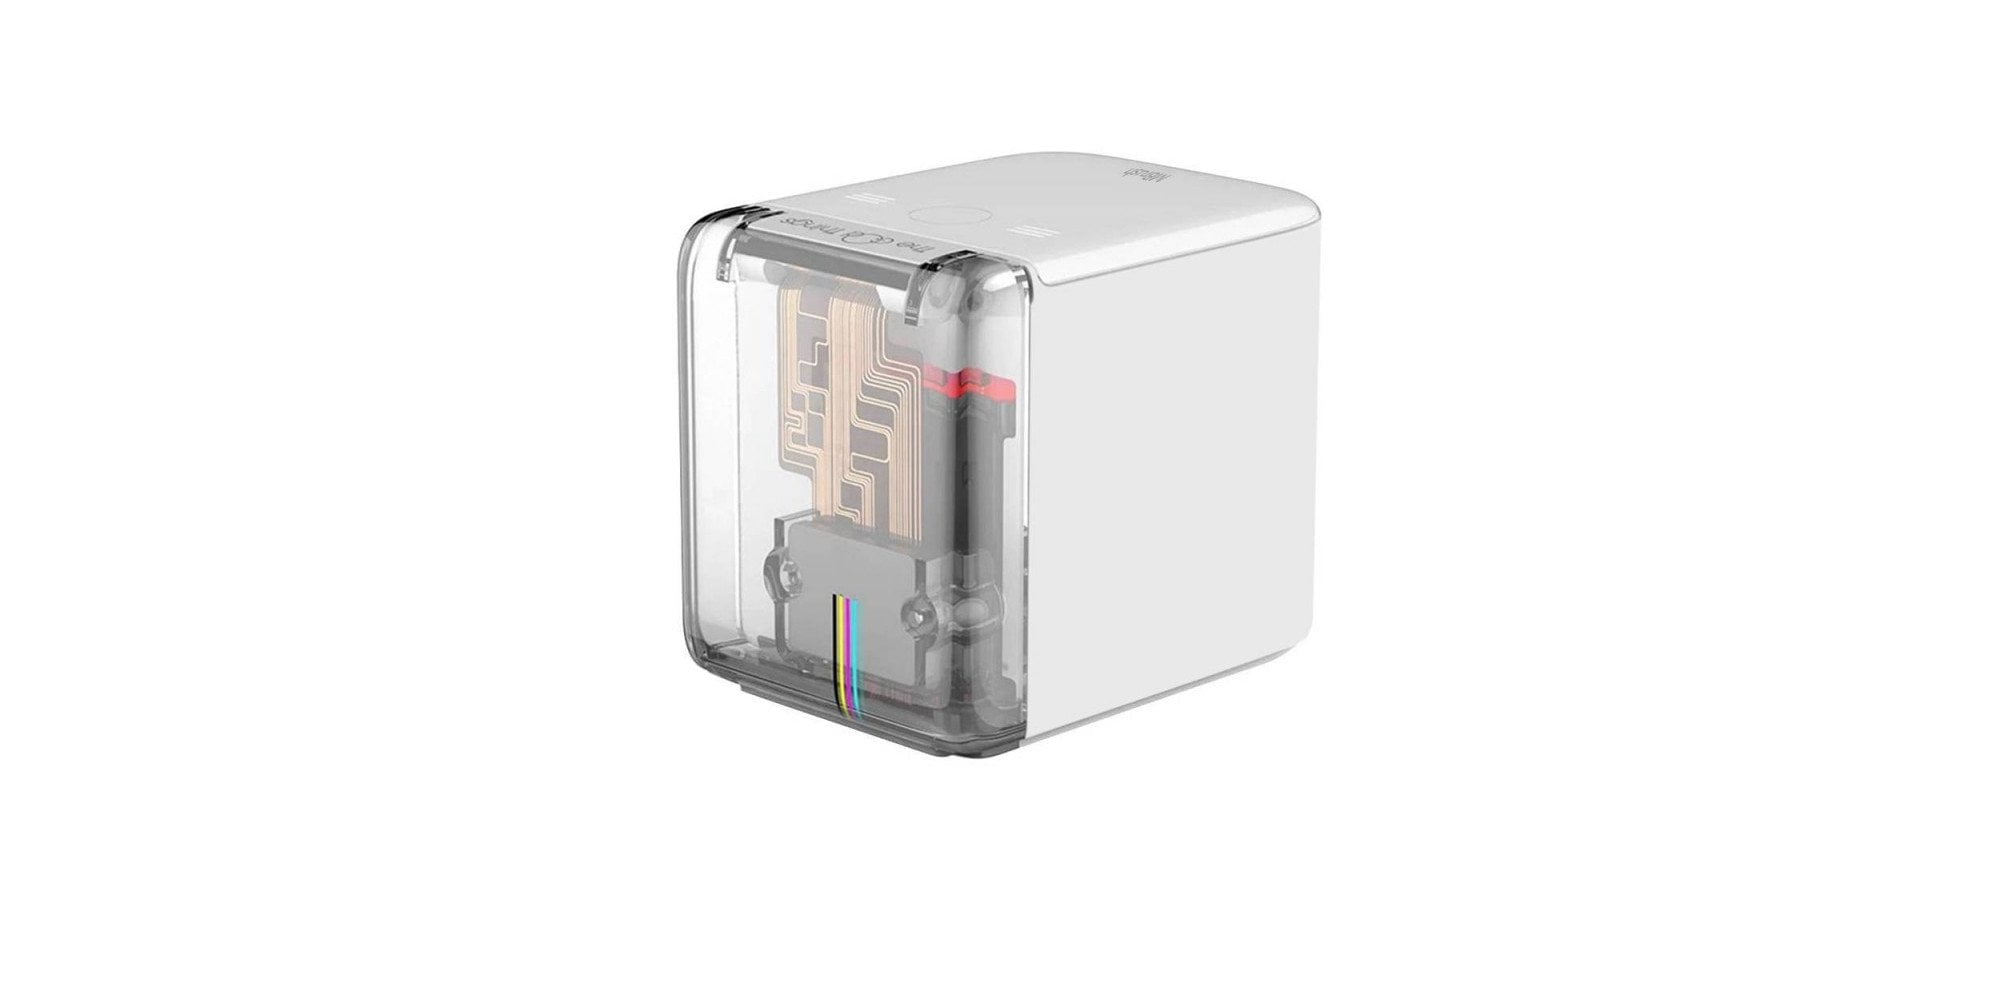 MBrush / PrinCube The World's Smallest Mobile Color Printer